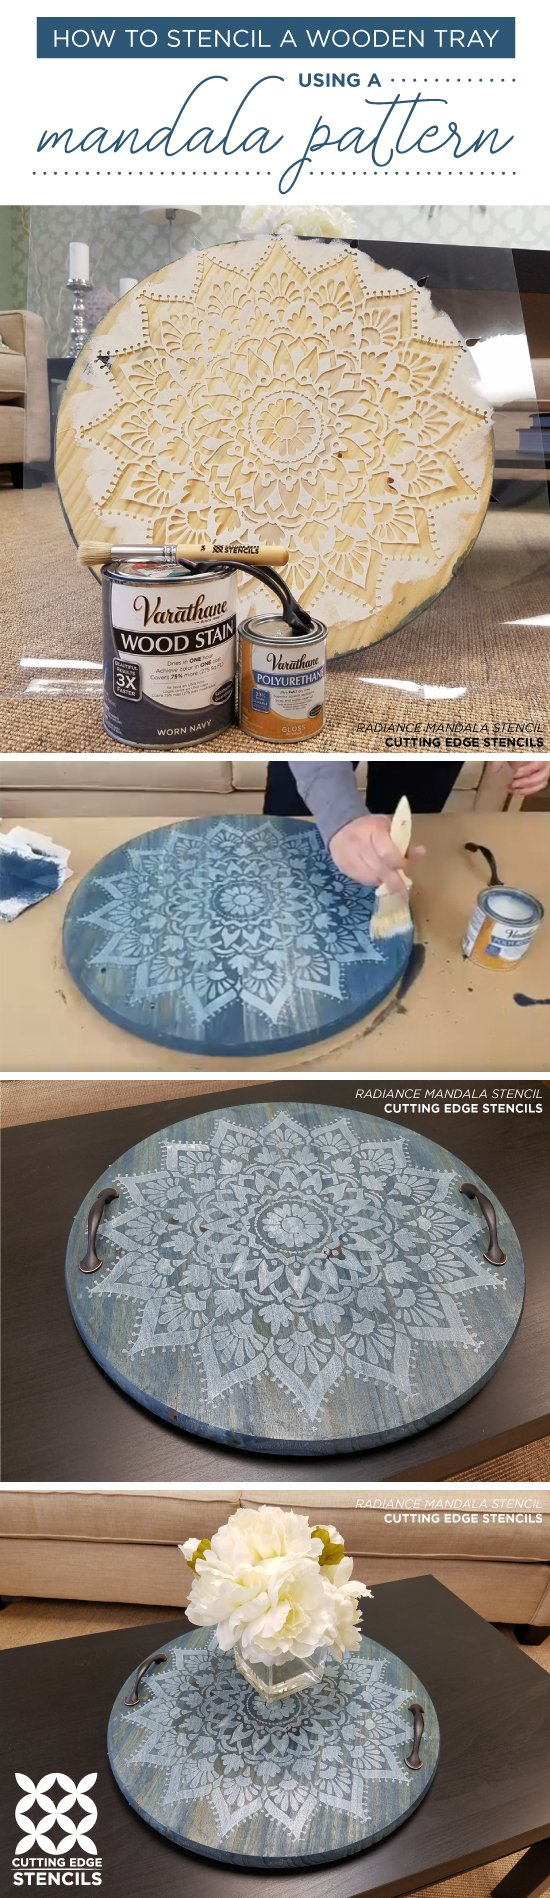 cutting edge crafts how to stencil a wooden tray using a mandala pattern 1831